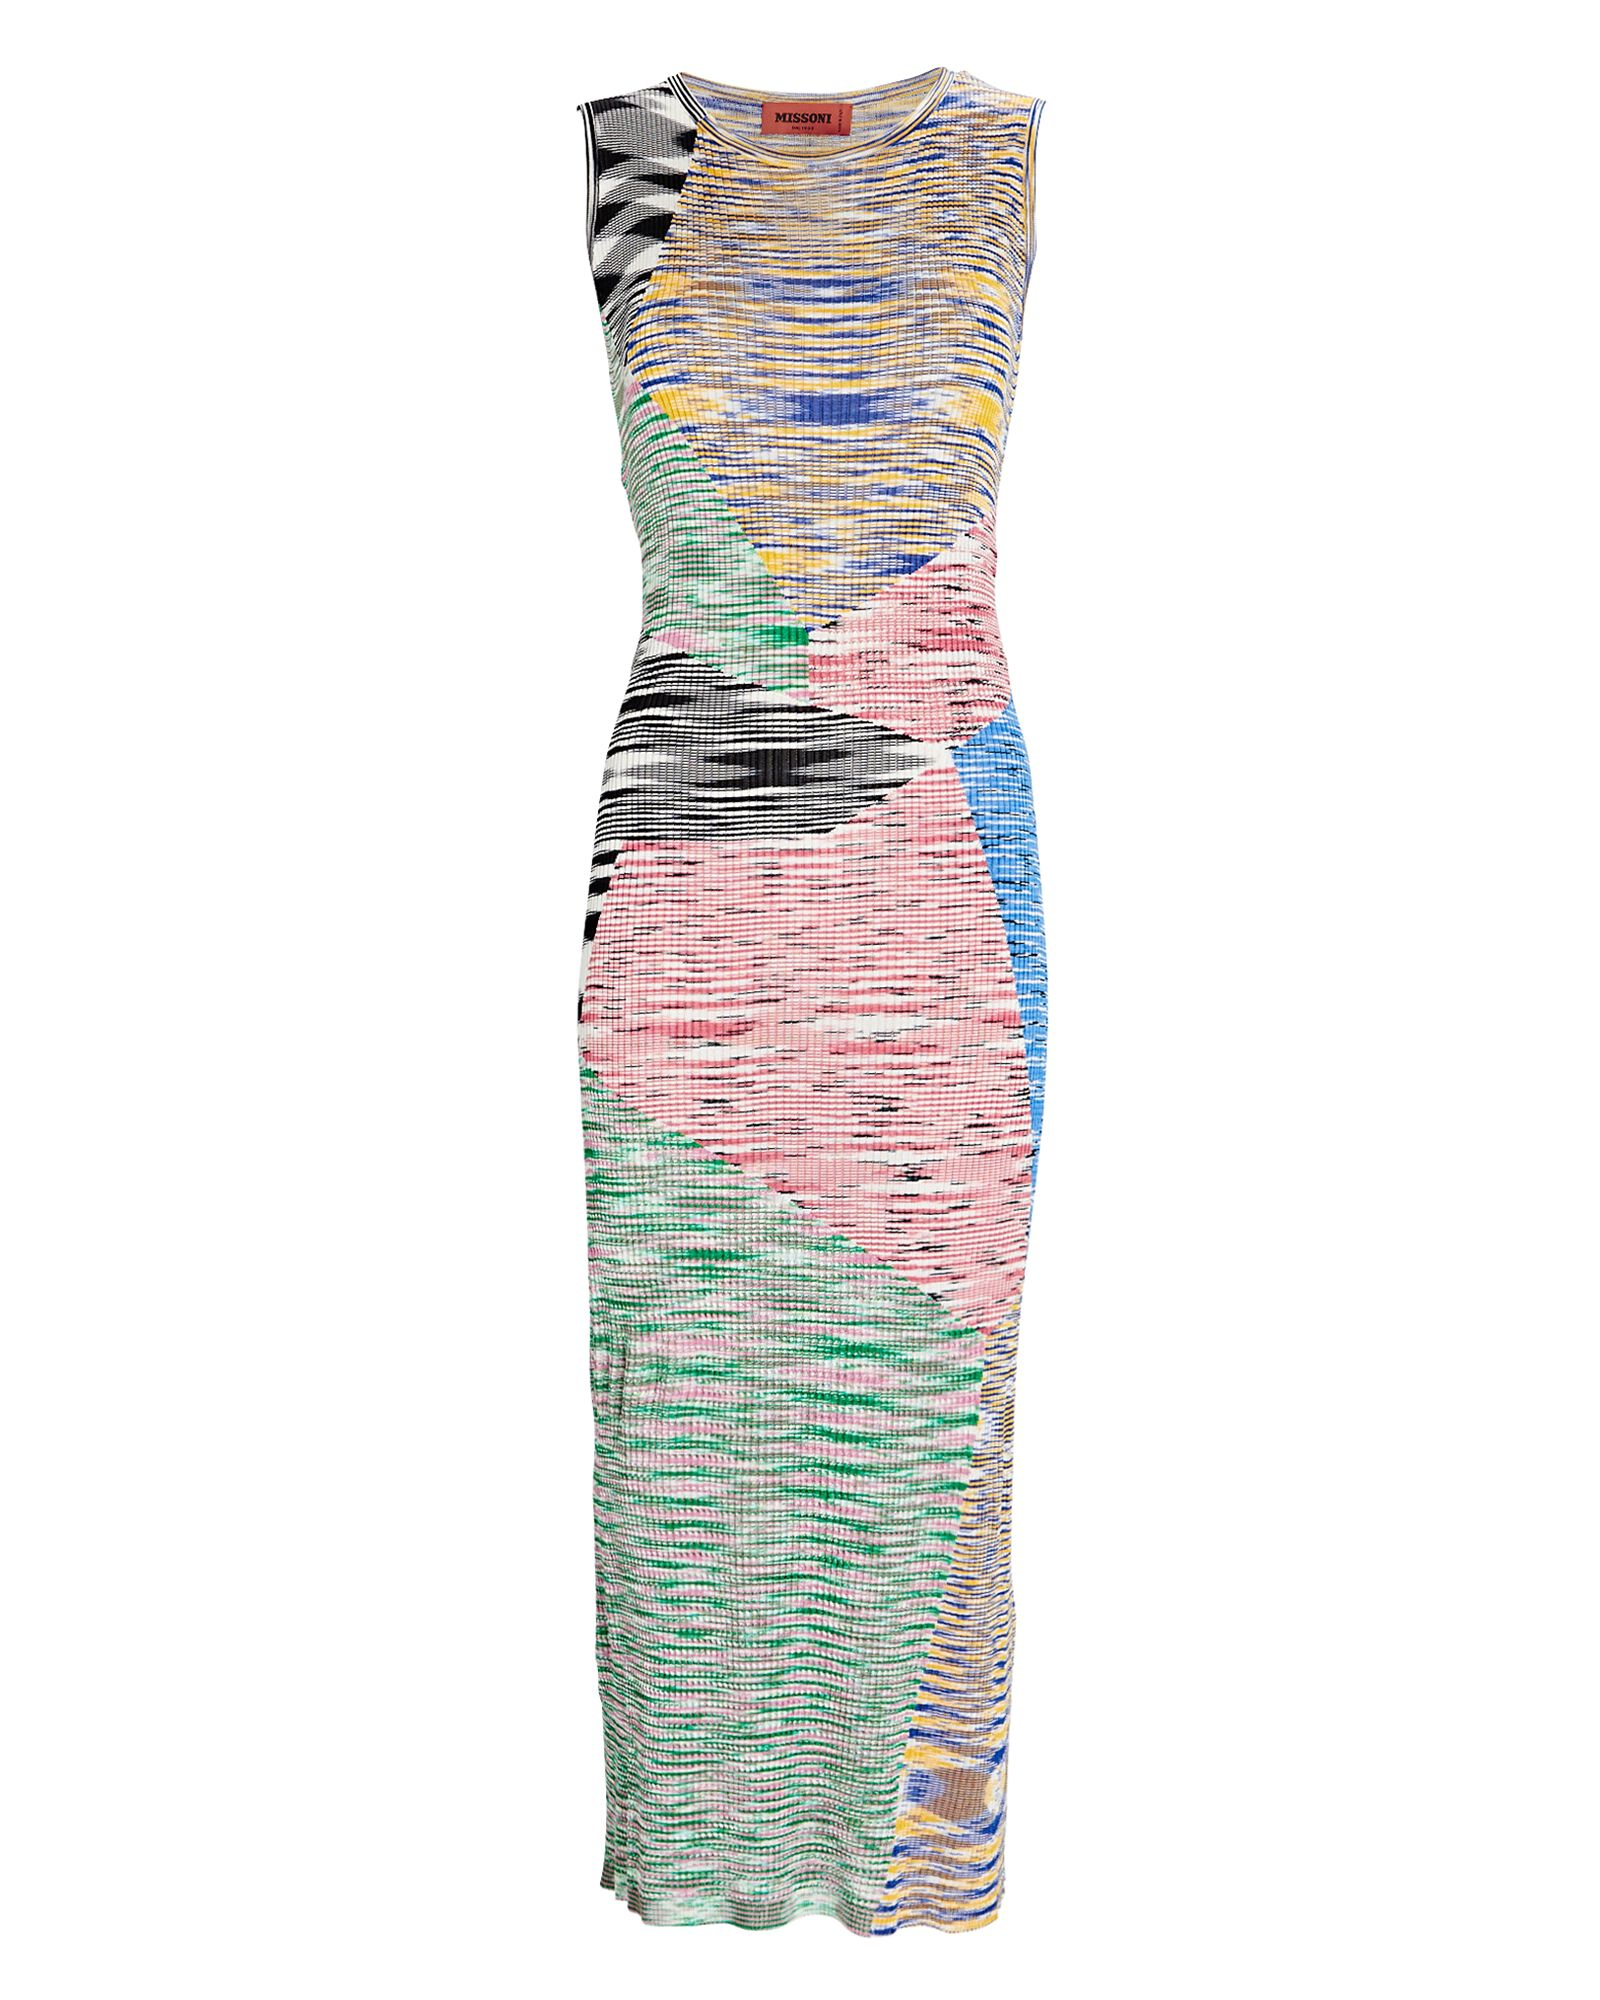 Space Dye Knit Midi Dress, GREEN/PINK/WHITE, hi-res